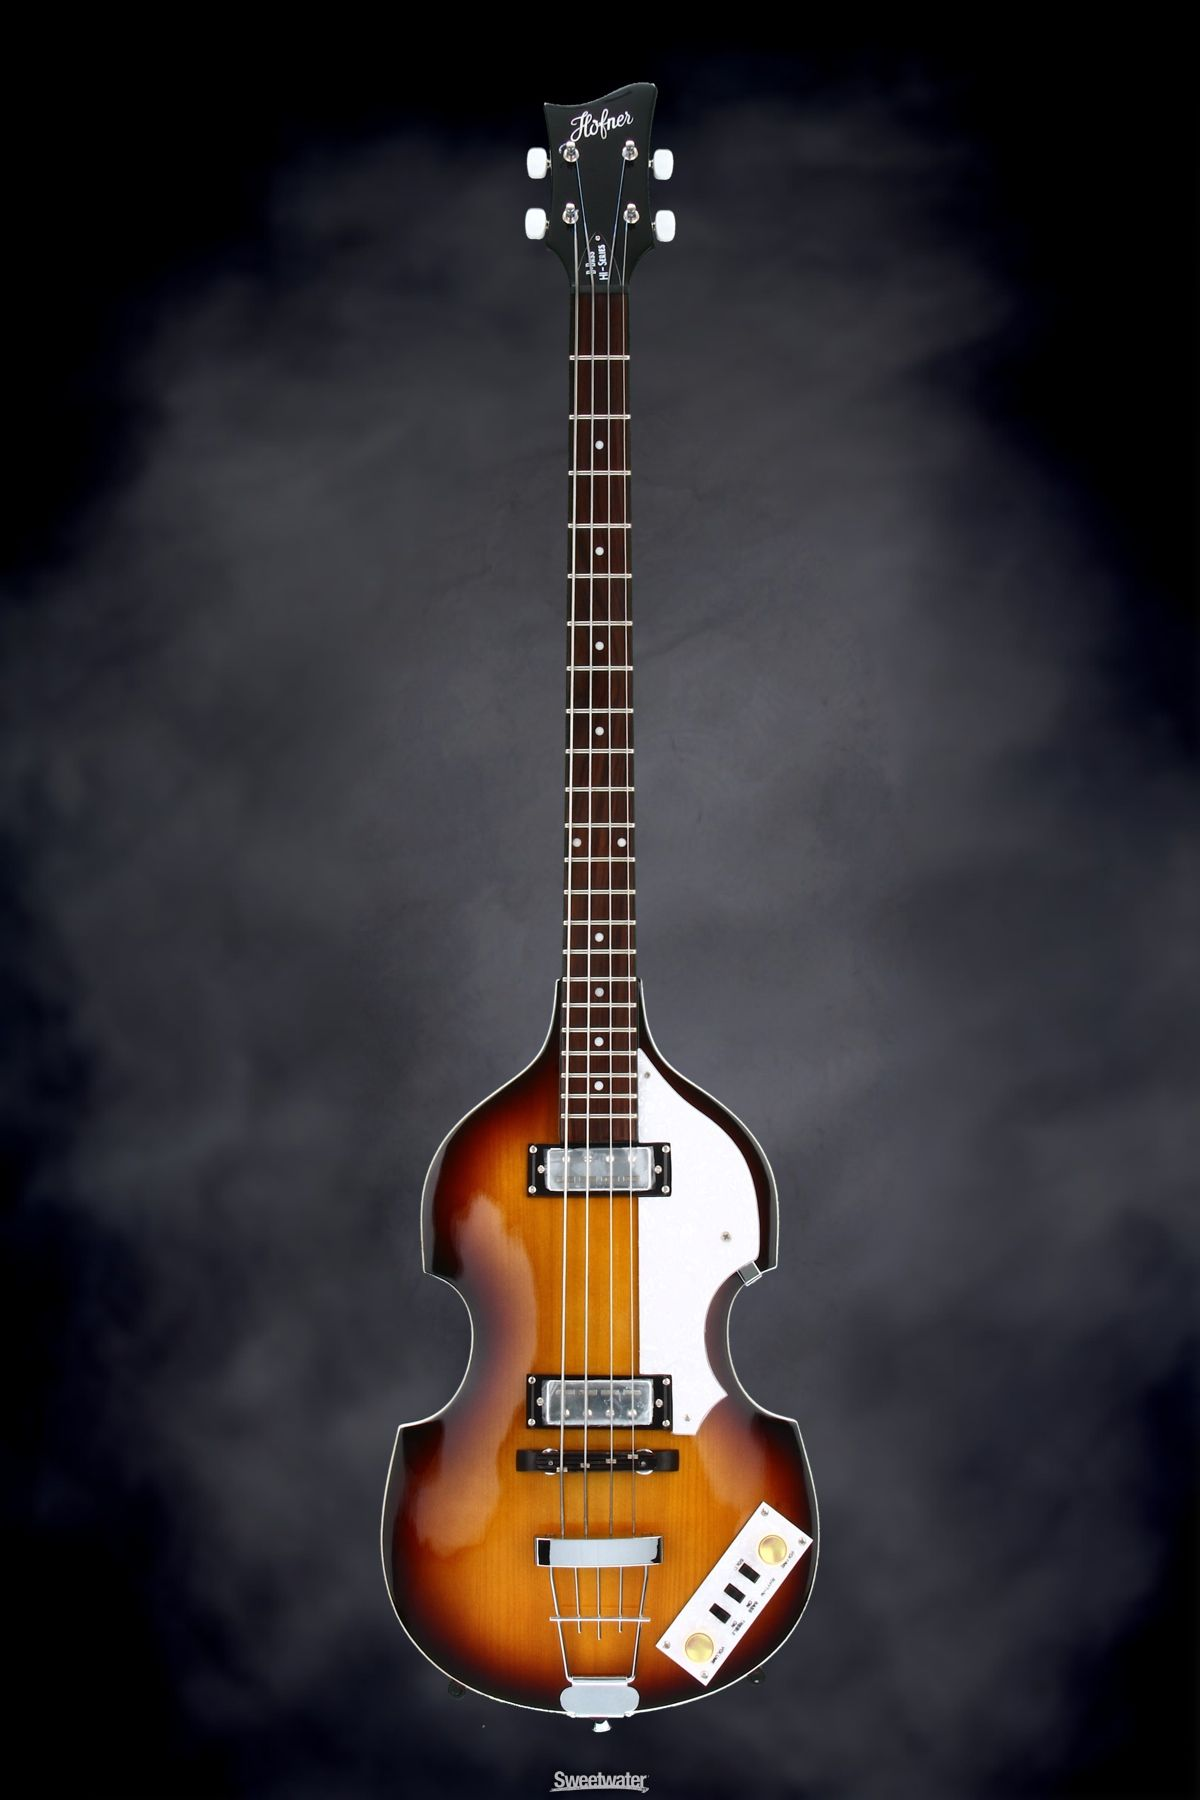 hofner ignition violin bass upgraded with german tea cup knobs and labella flatwound strings sweetwater com [ 1200 x 1800 Pixel ]